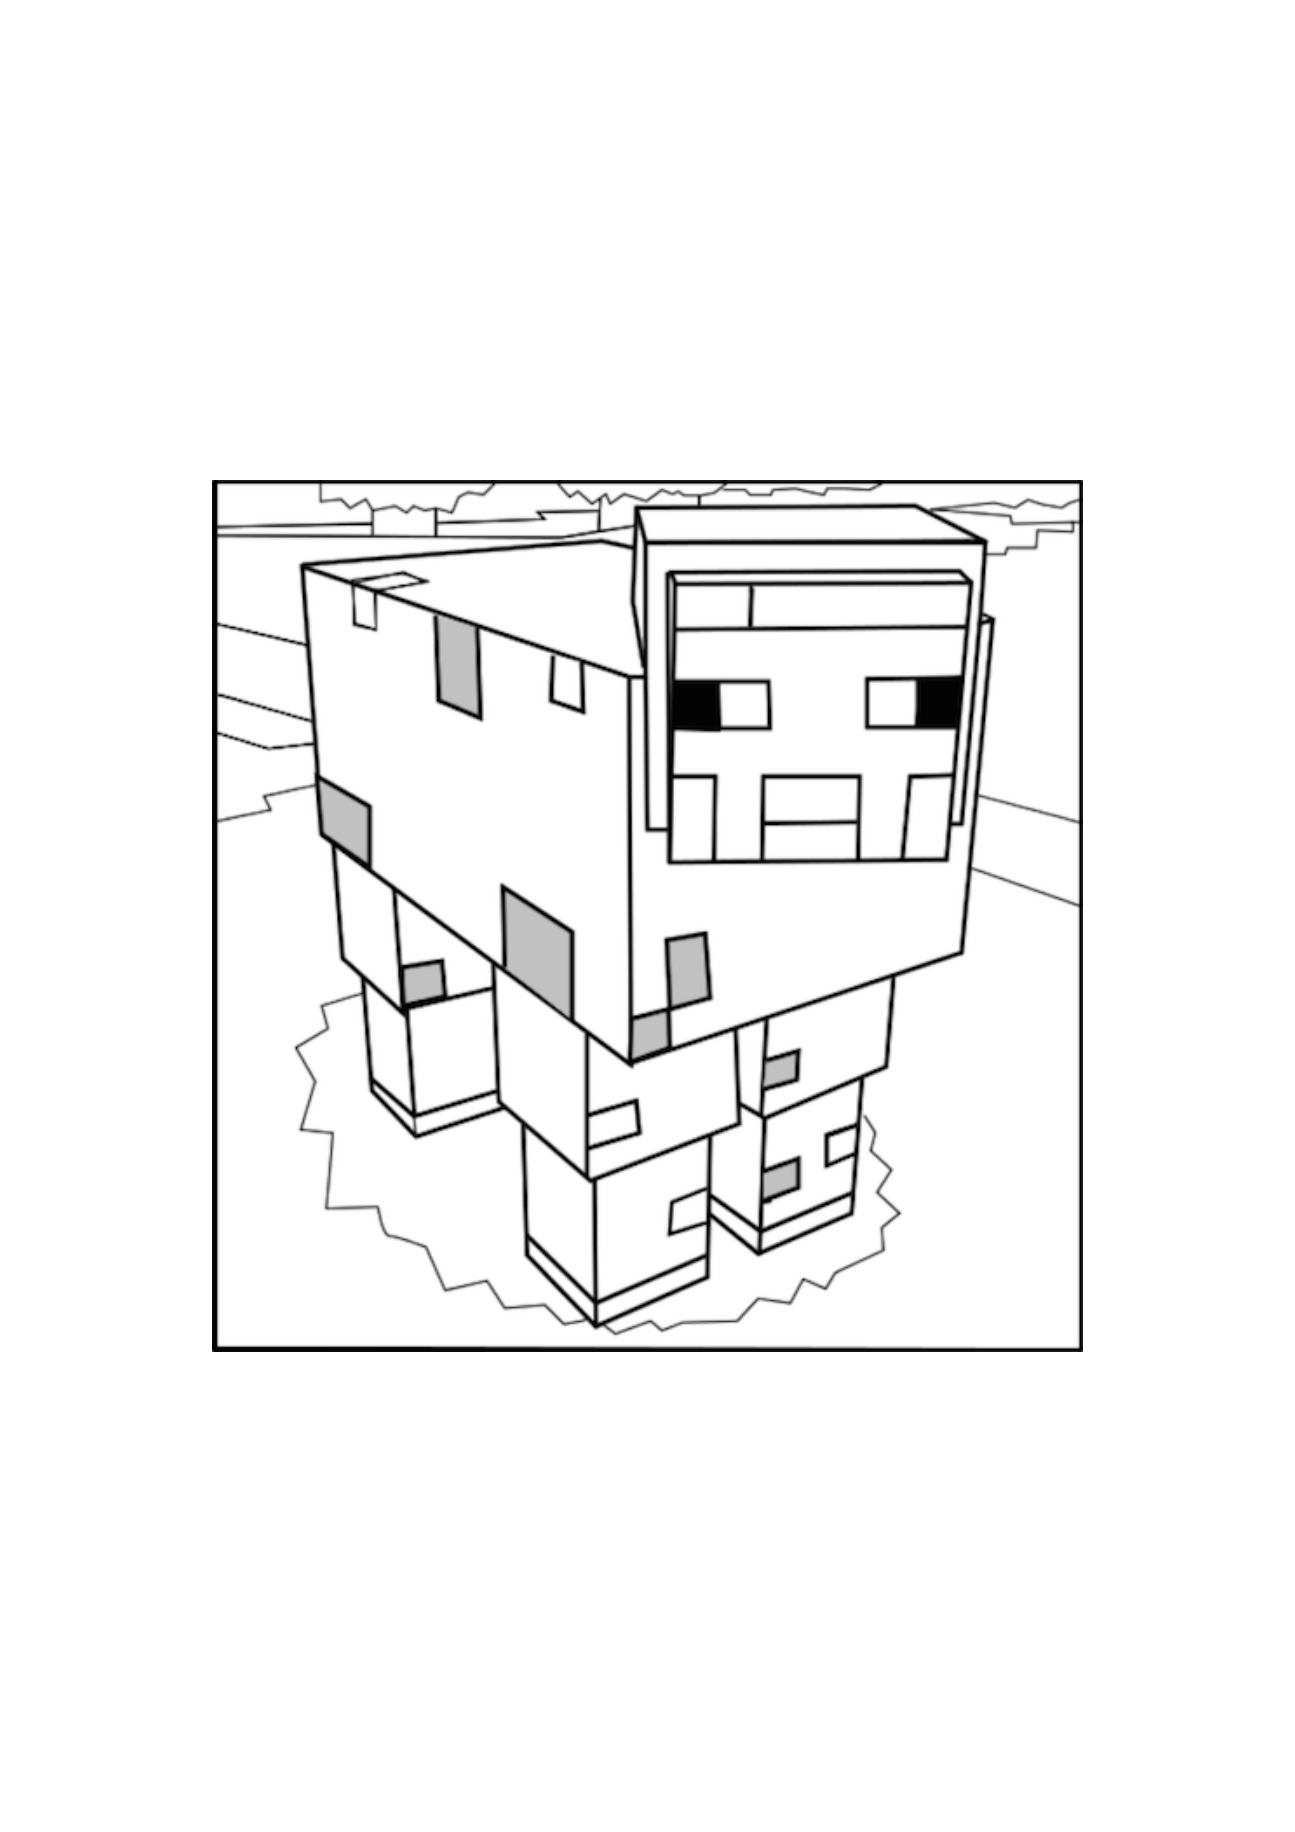 Minecraft Sheep Coloring Pages At Getdrawings Com Free For